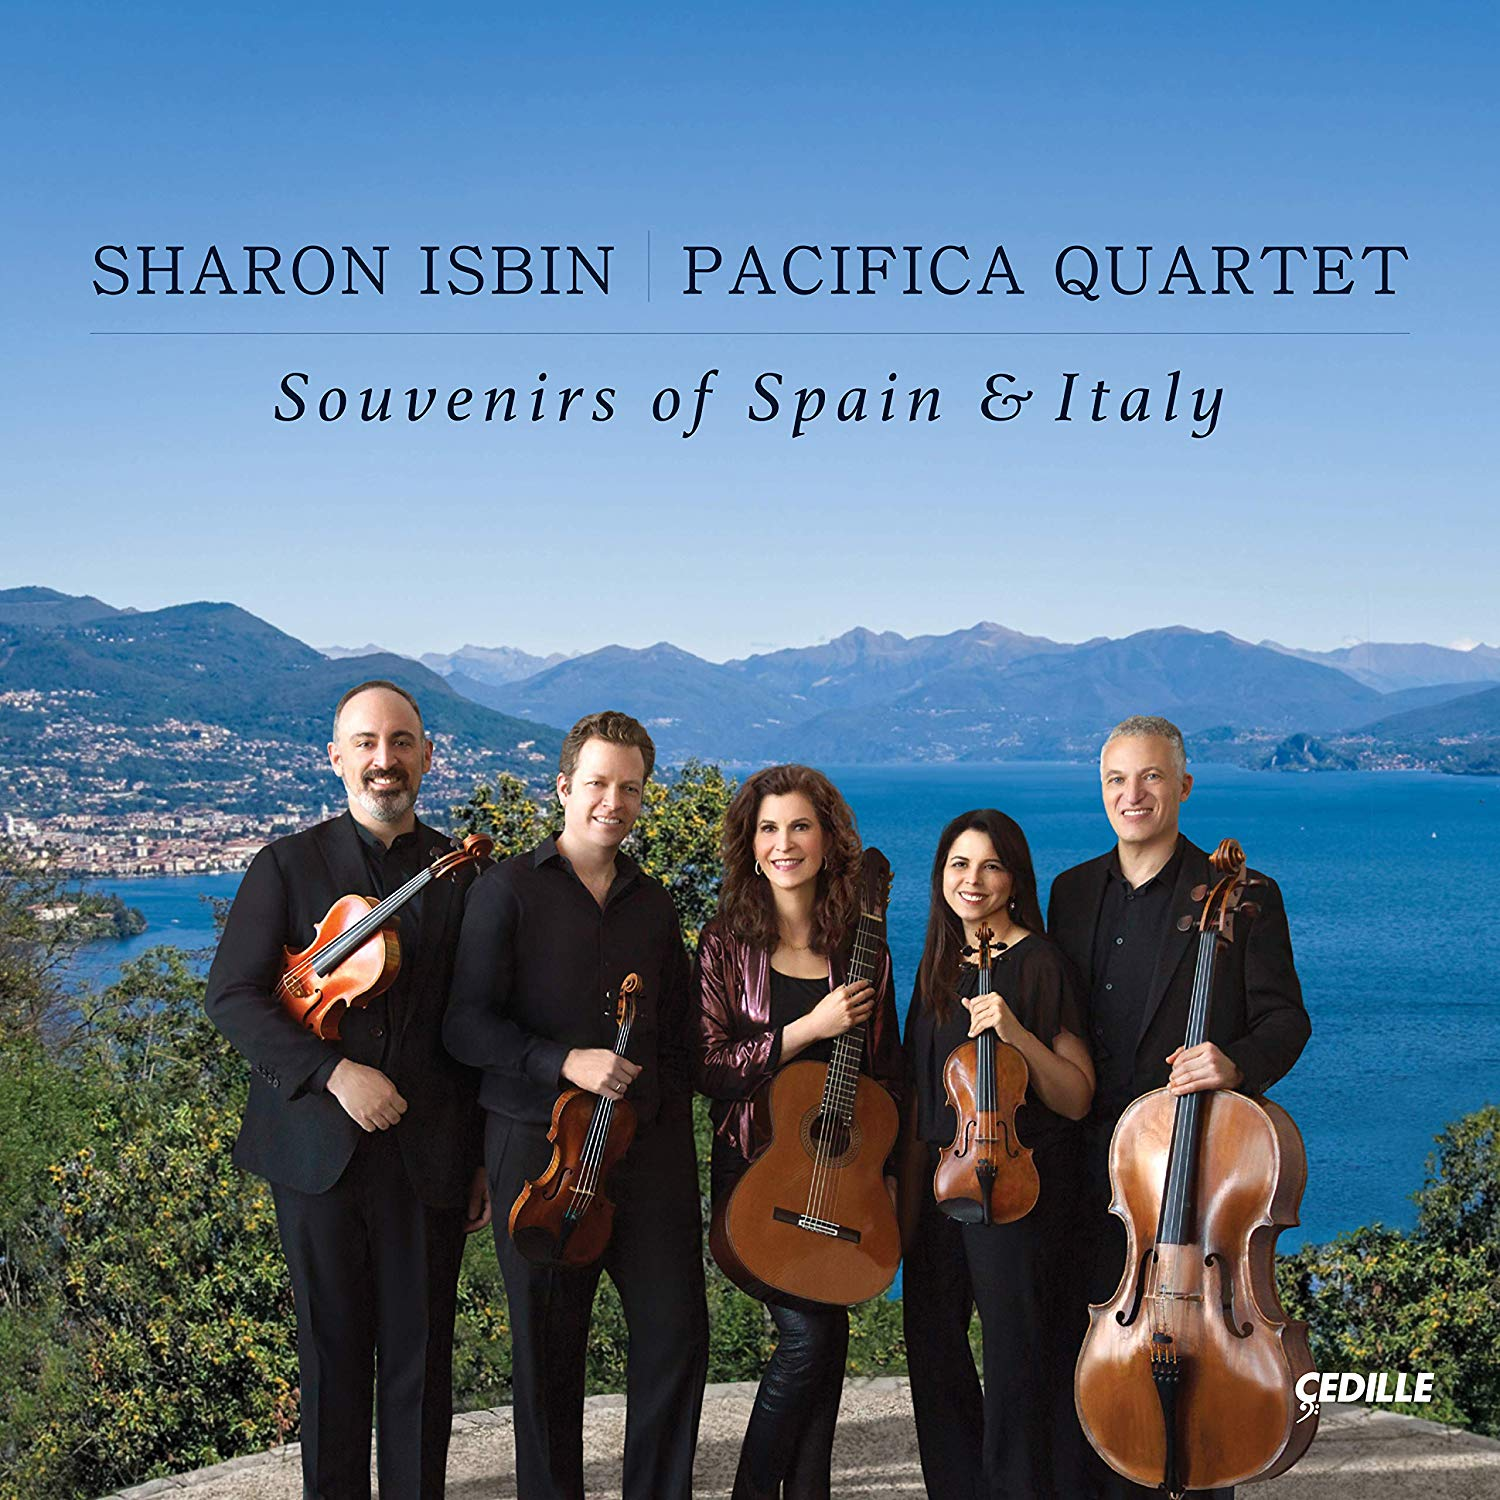 The Ecstasy of Enjoyment: Sharon Isbin with the Pacifica Quartet